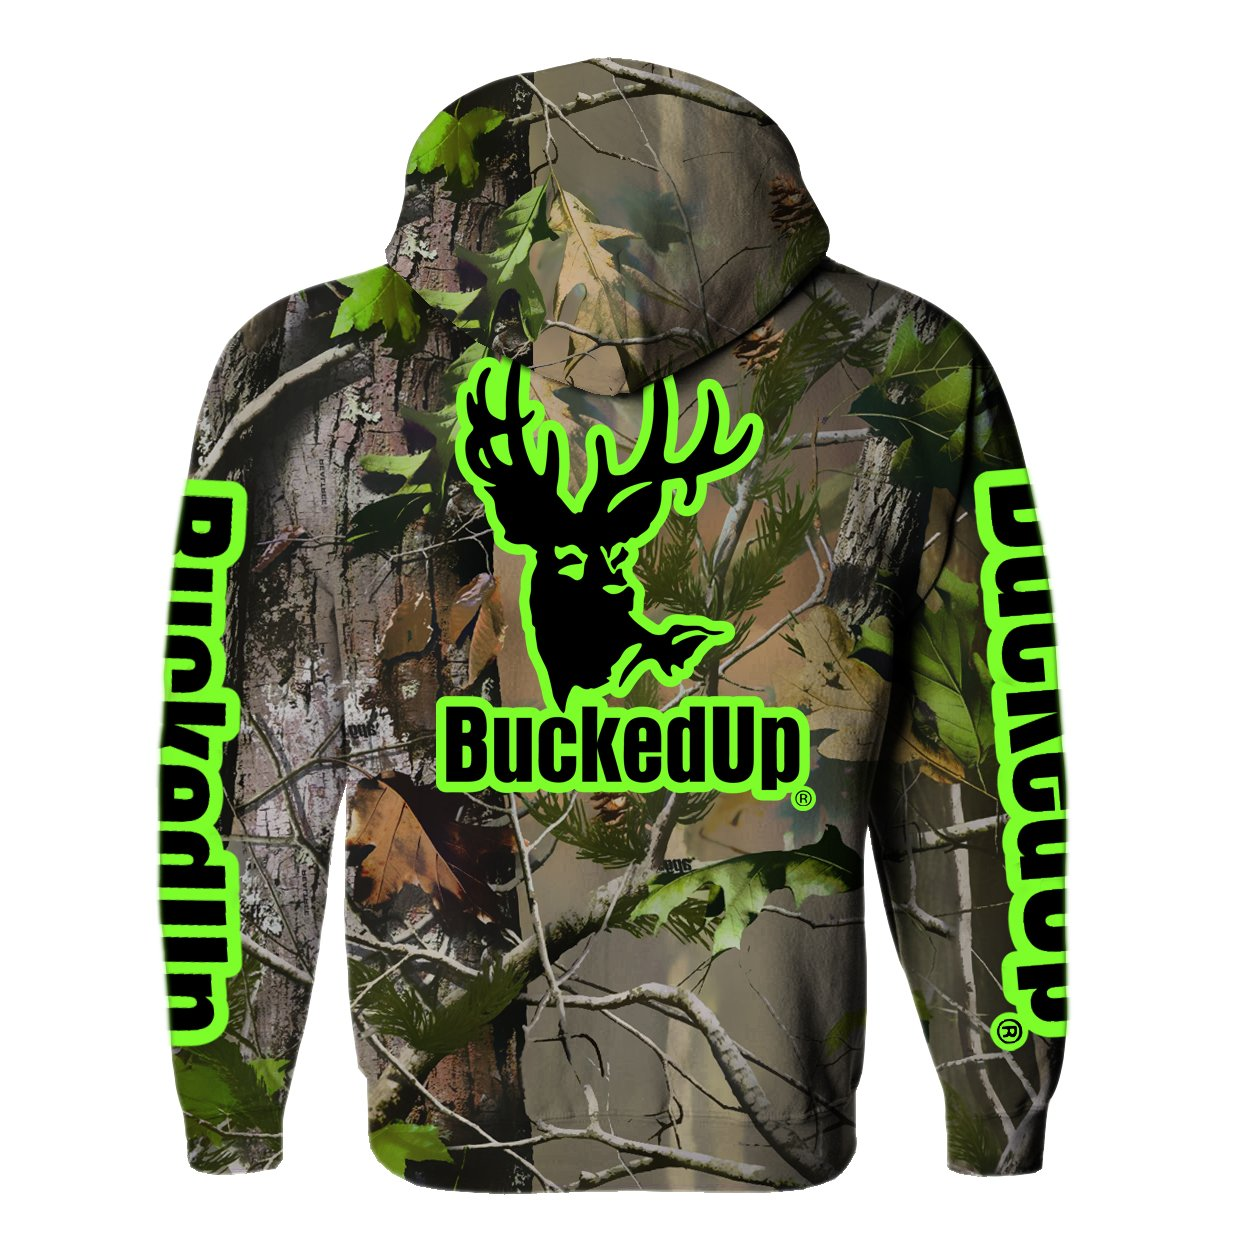 amazon com buckedup pullover hoodie realtree apg with logo clothing